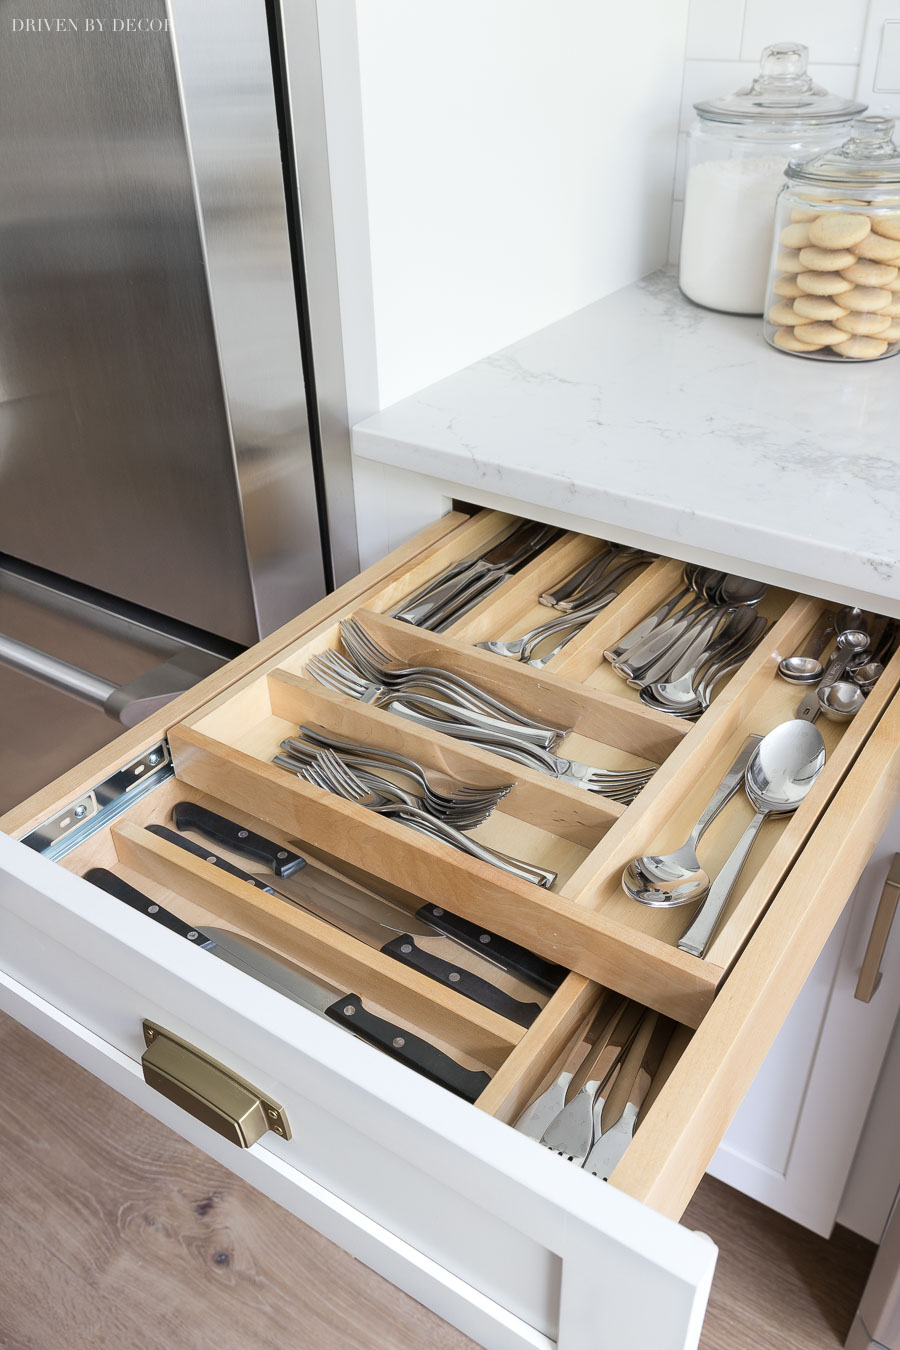 Kitchen Cabinet Drawers Cabinet Storage Organization Ideas From Our New Kitchen